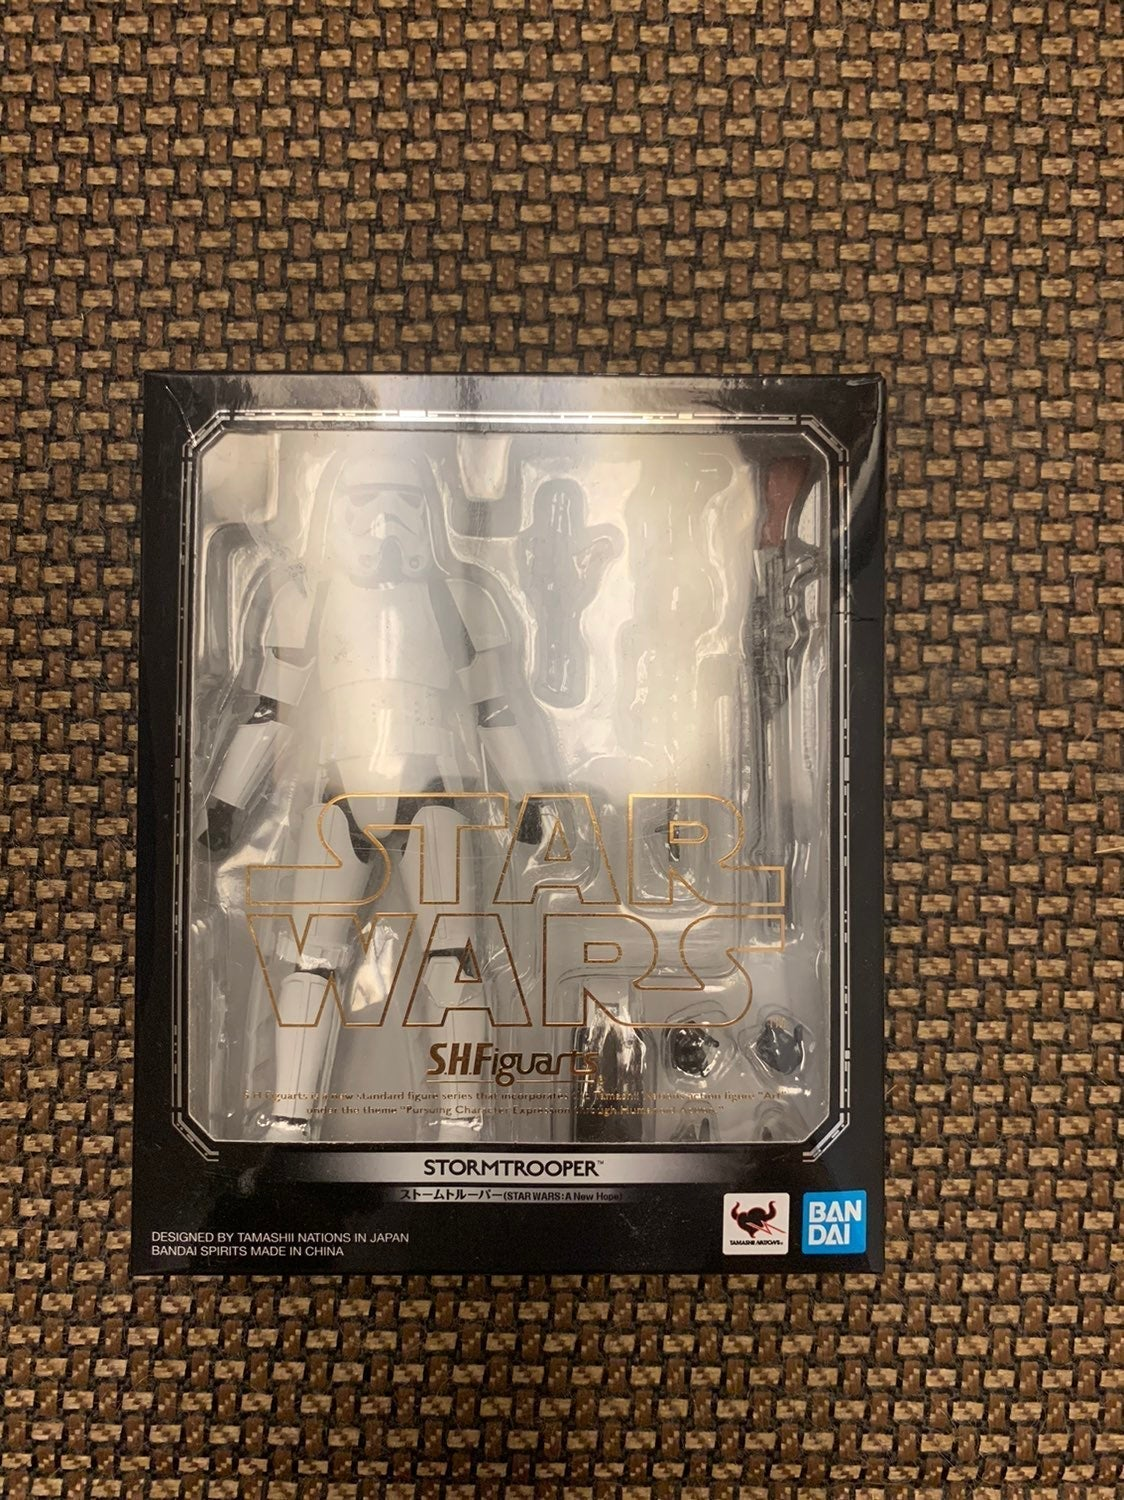 Opened Figuarts Imperial Stormtrooper